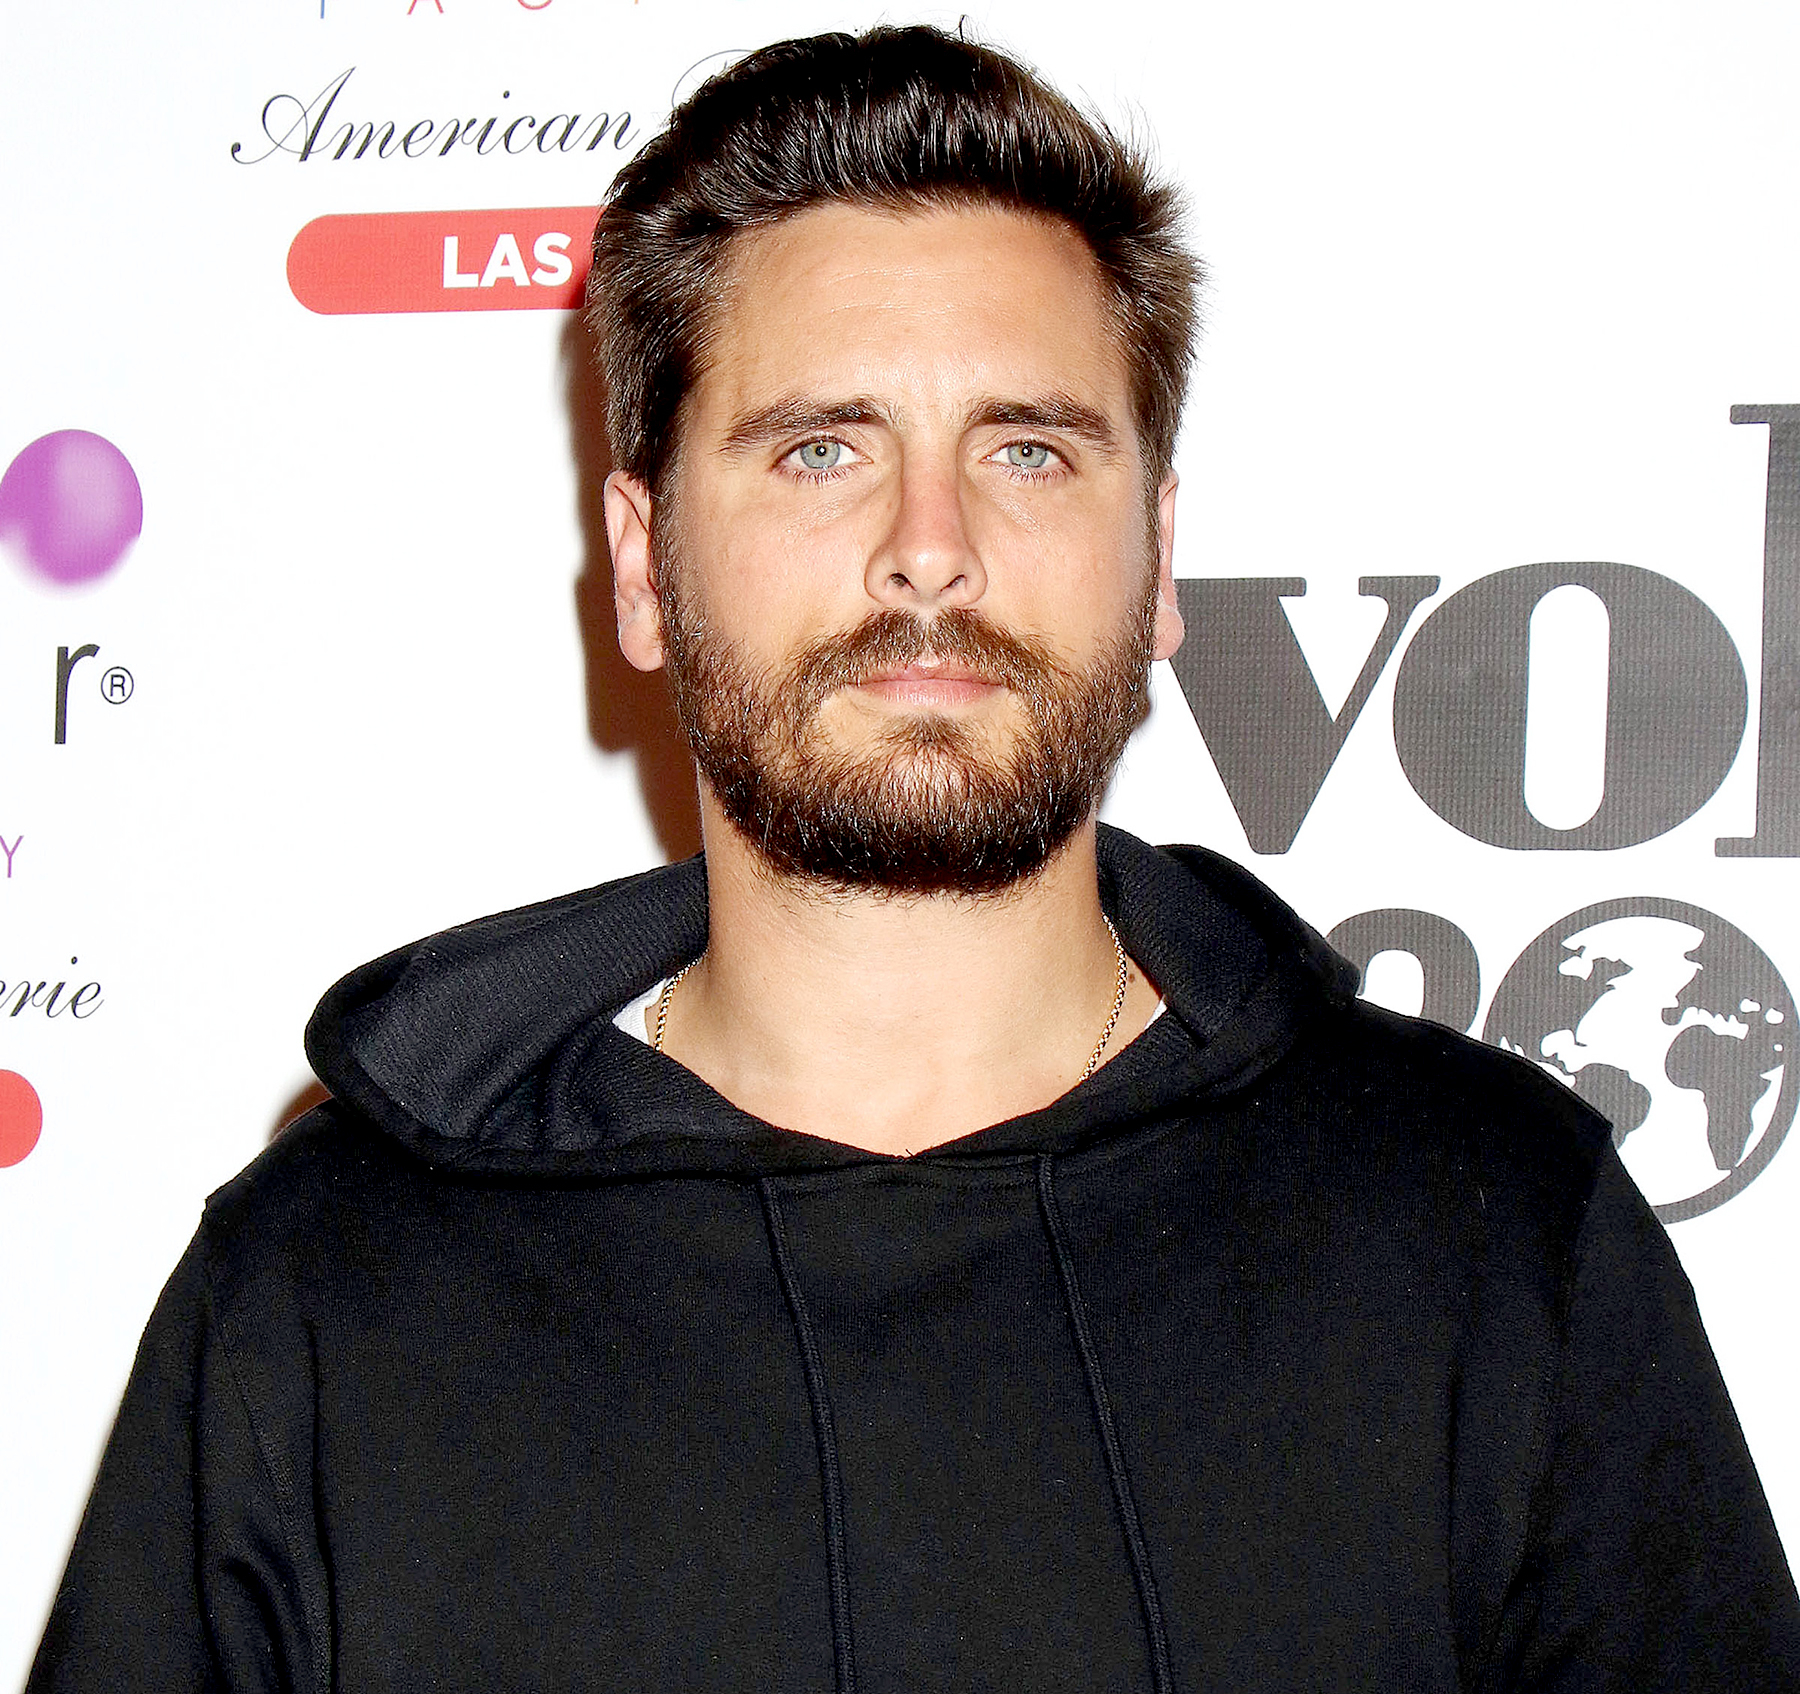 Scott Disick kicks off the grand opening celebration month at Sugar Factory American Brasserie, March 19, 2017.